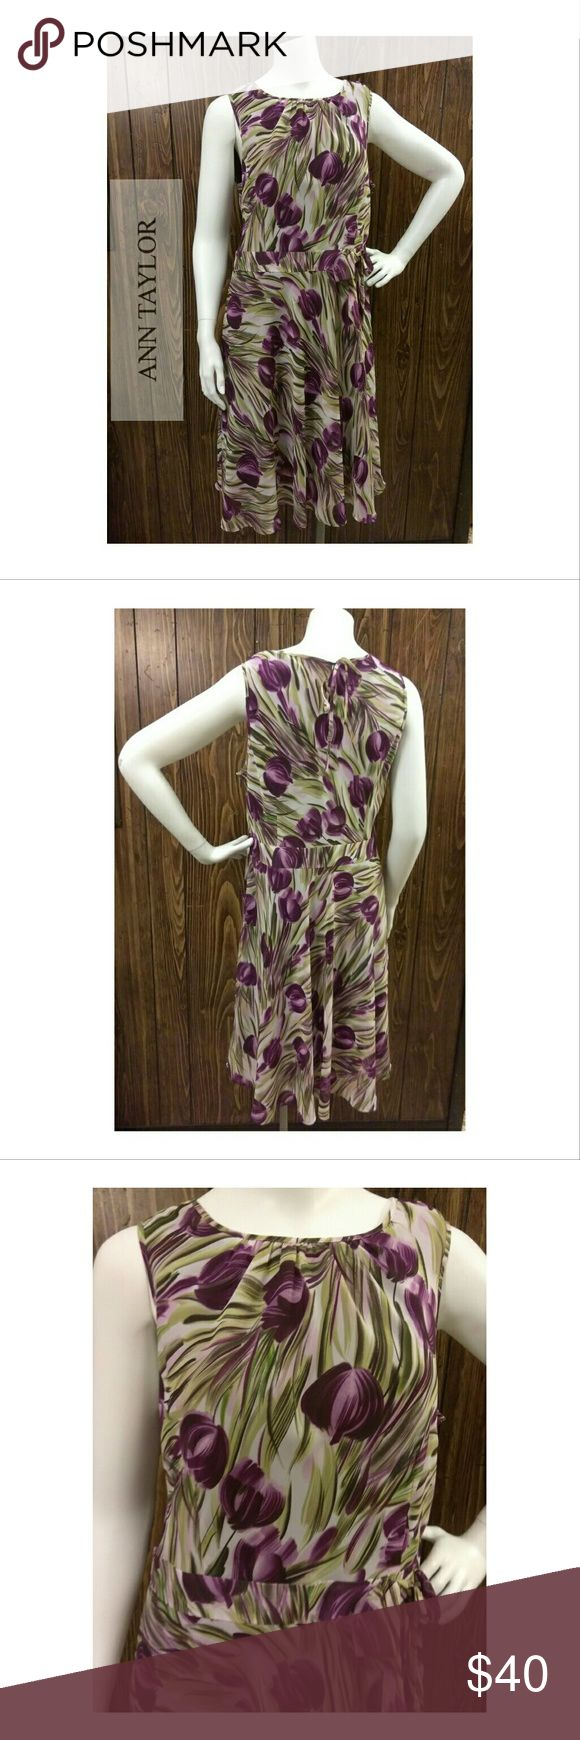 🍒Ann Taylor🍒 Petite Purple Tulip dress sz 12P Excellent pre-loved 💖 condition. Curved neckline, flare , slightly ruffled hem. Tie closure (pic 4). Flowy style, trendy graphic design, perfect for any occasion. Above knee length   Measurements are: Ann Taylor Dresses